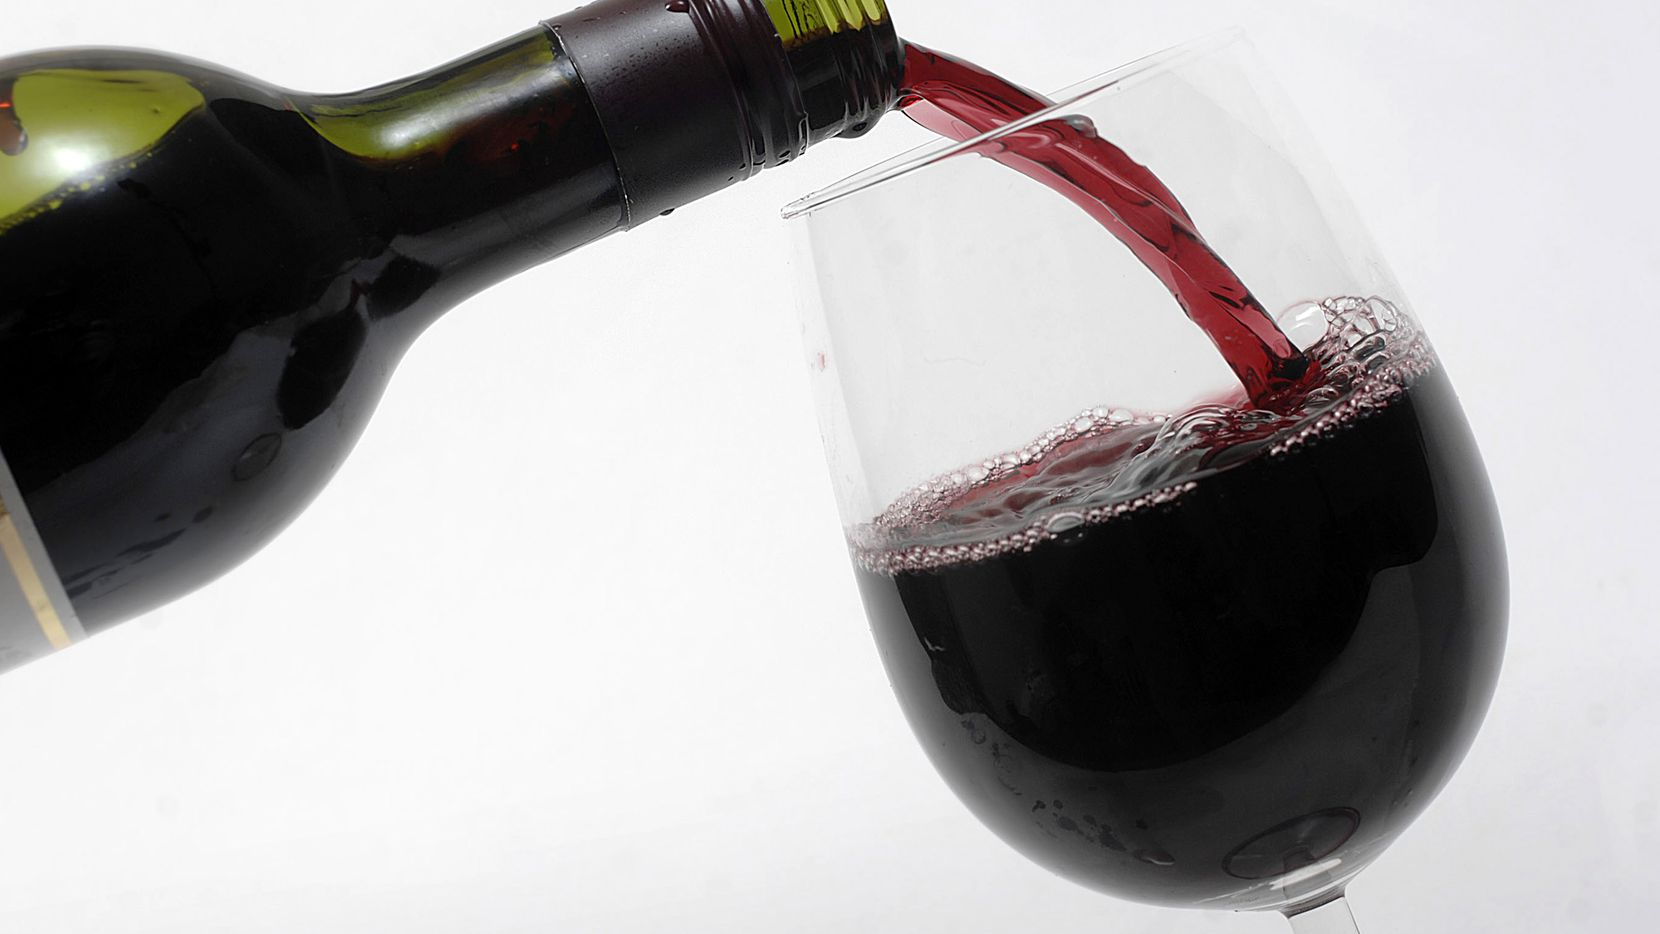 More wine coming to Plano!